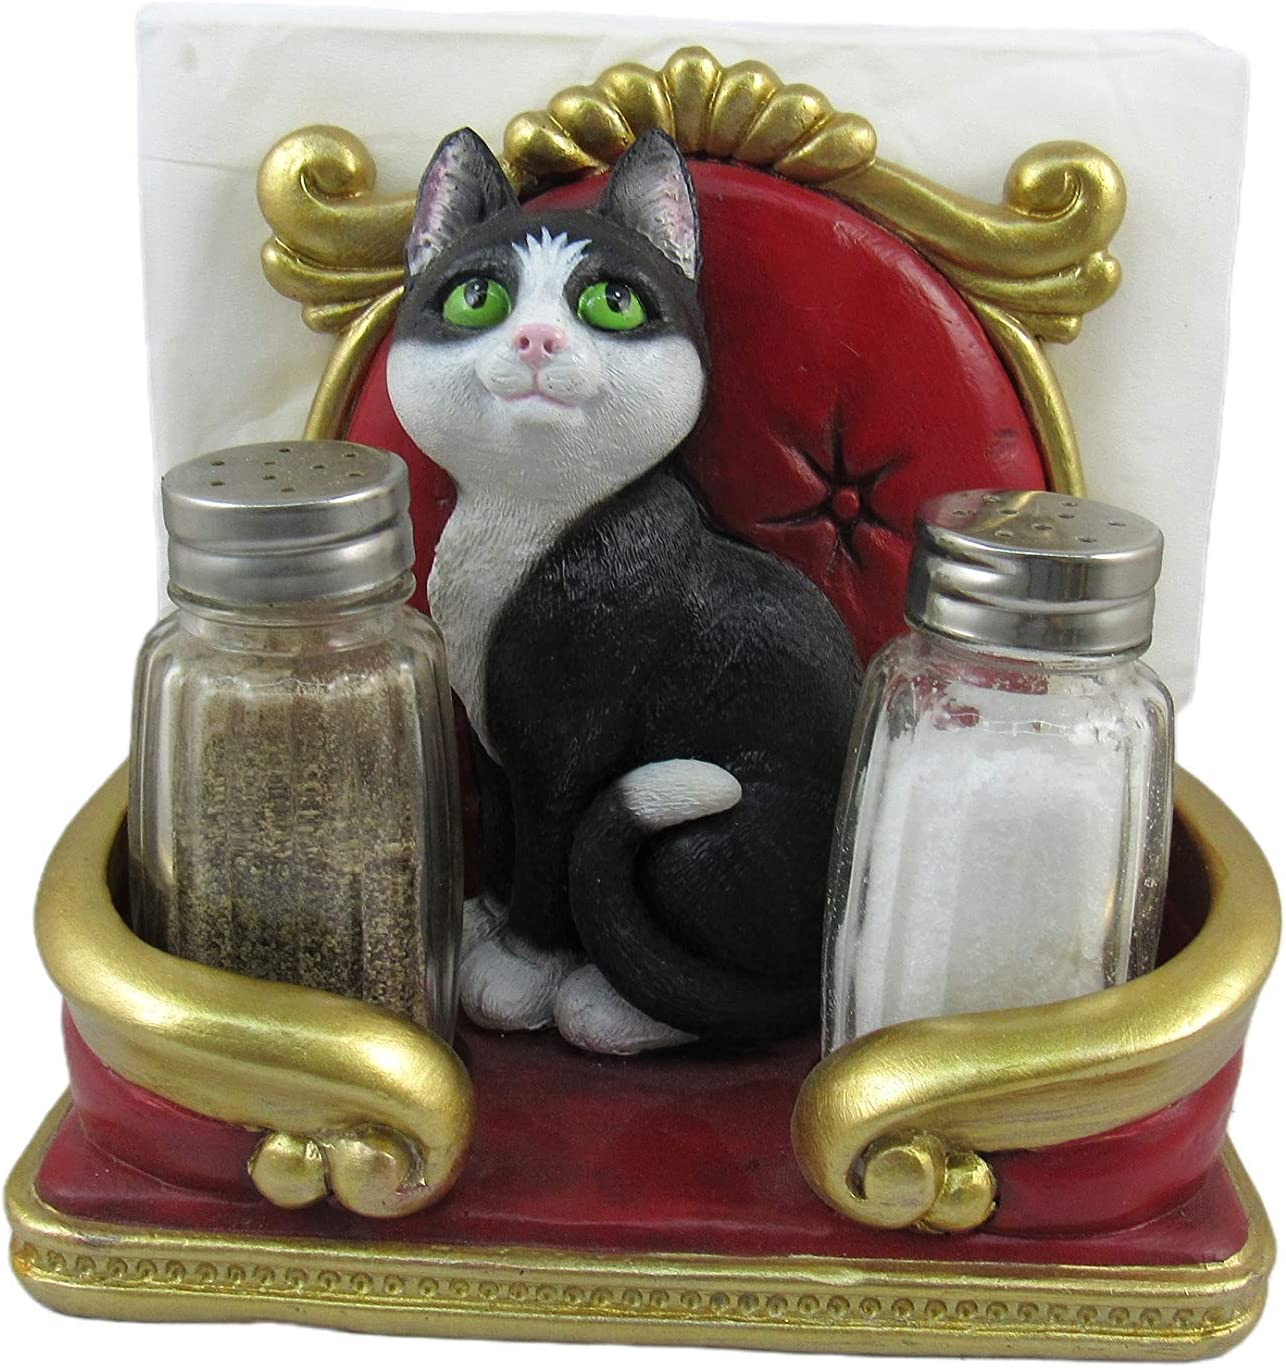 World of Wonders - Meow & Forever Series - Royal Catering - Collectible Decorative Tuxedo Cat Napkin Holder Salt & Pepper Shakers 3-Piece Caddy Set Home Decor Kitchen Accessory Dining Accent, 6-inch'